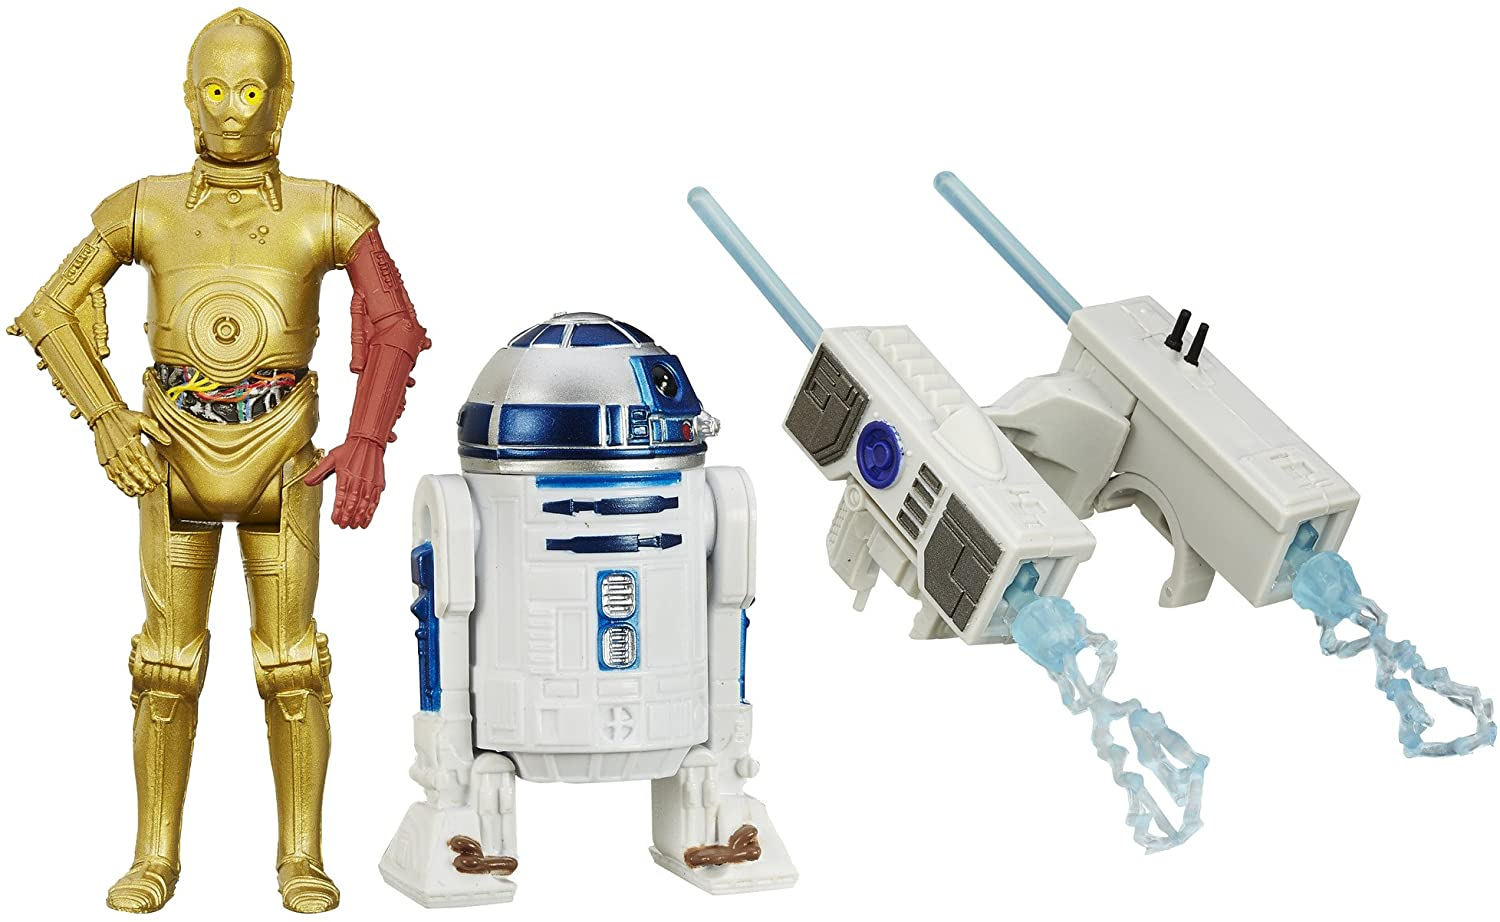 3.75/'/' STAR WARS BB-8 Astromech Droid Action Figures  Force Awakens Toys Gifts